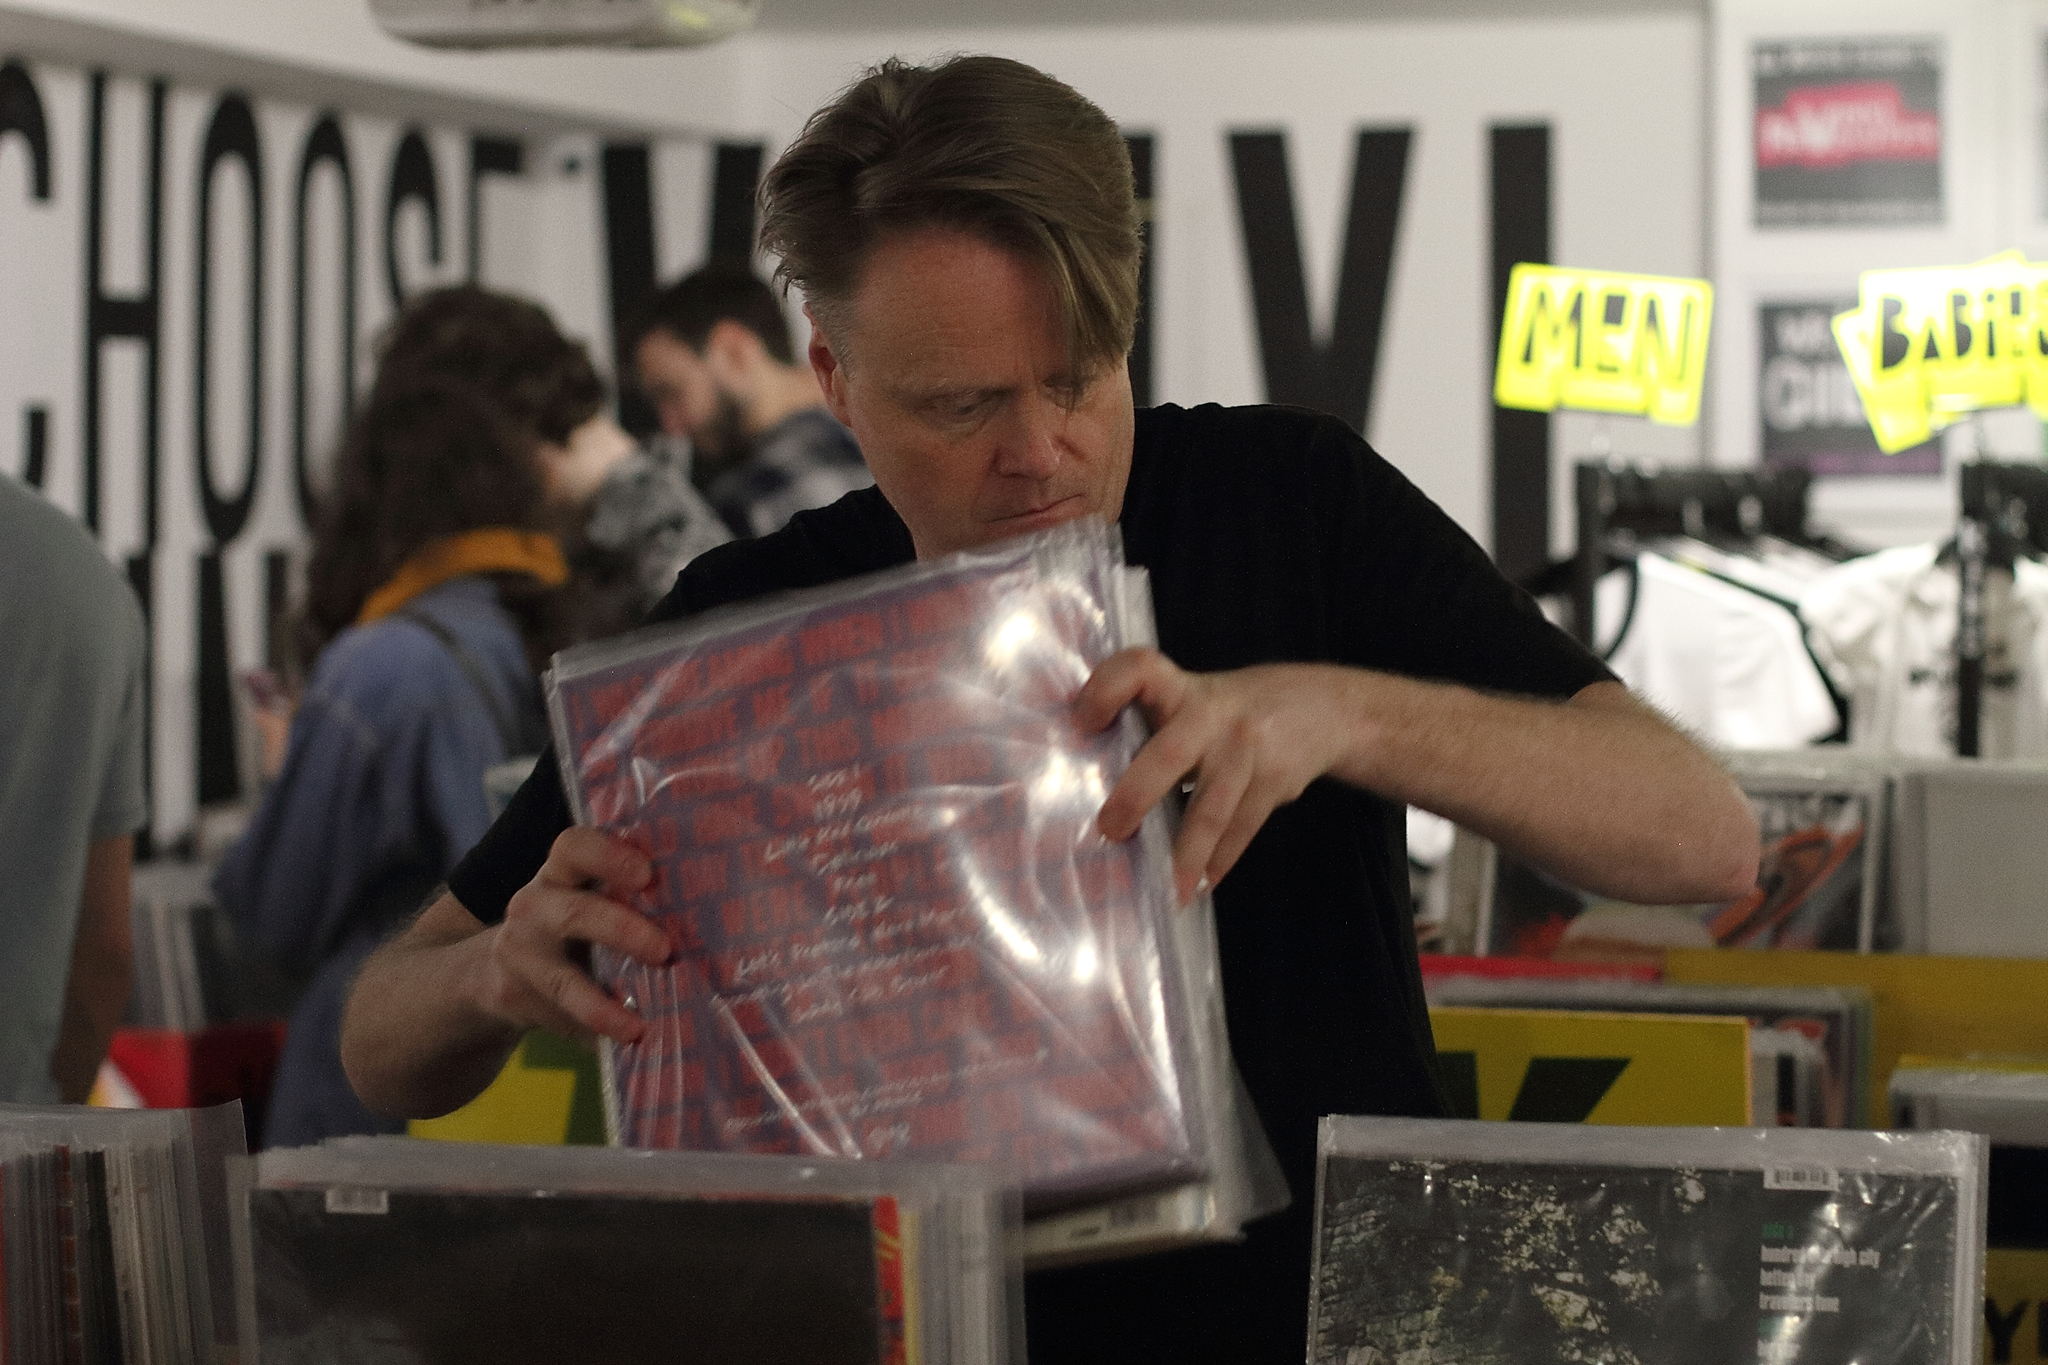 Simon restocking the vinyl